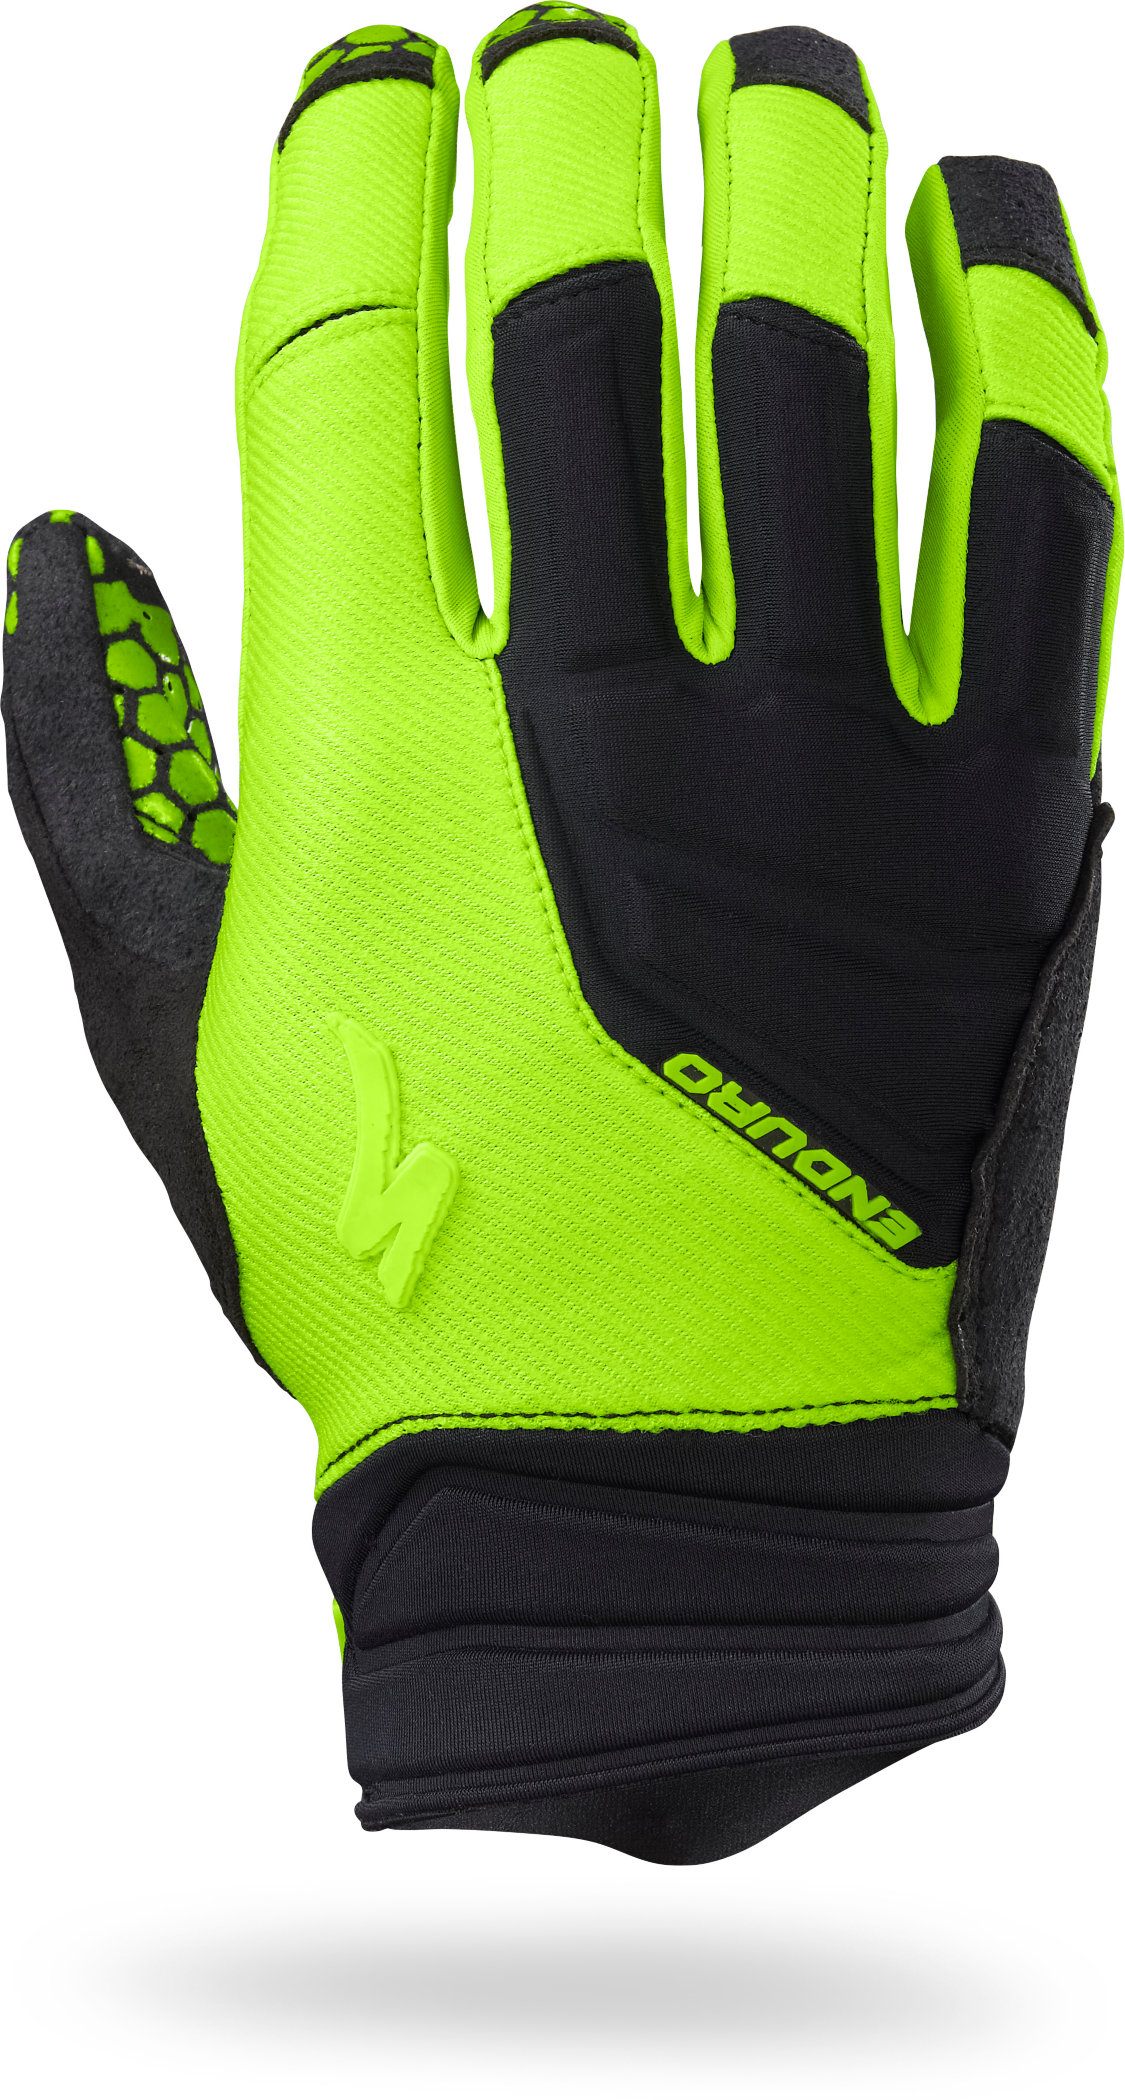 SPECIALIZED ENDURO GLOVE LF MONGRN S - Bikedreams & Dustbikes